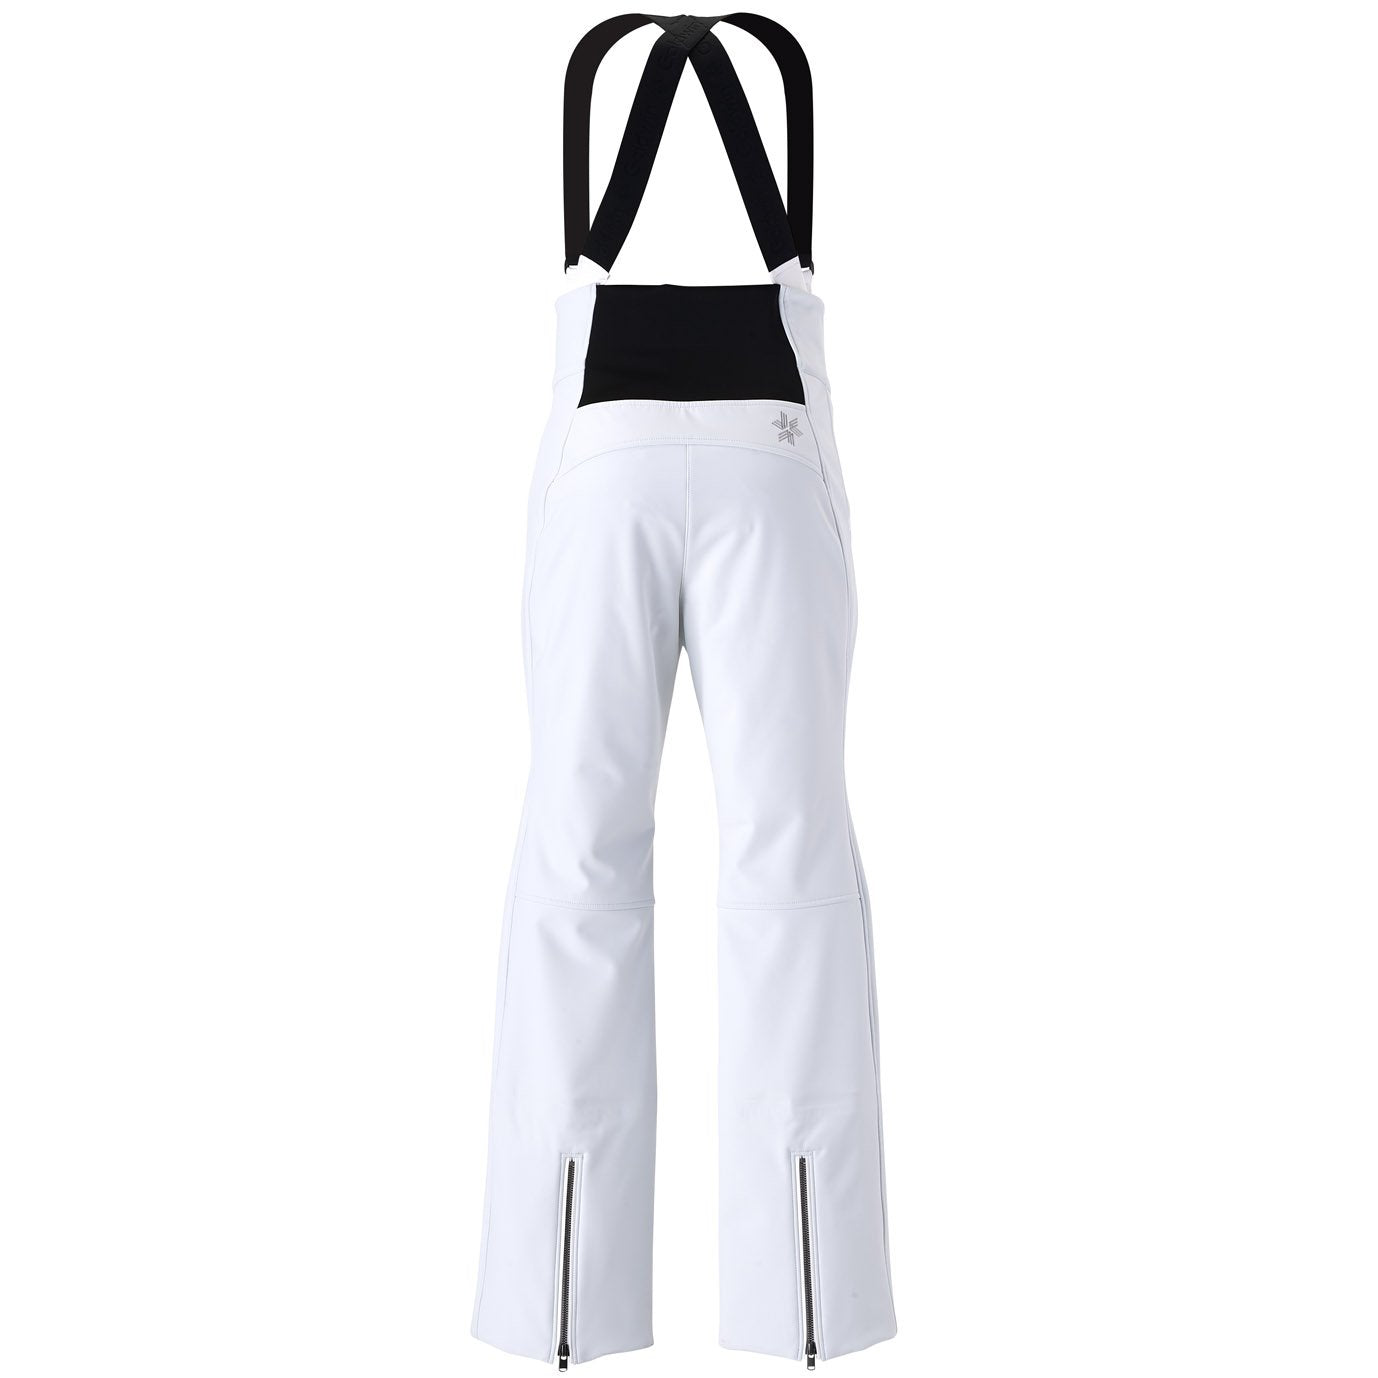 ALBIREO HIGH-WAISTED BONDING PANTS